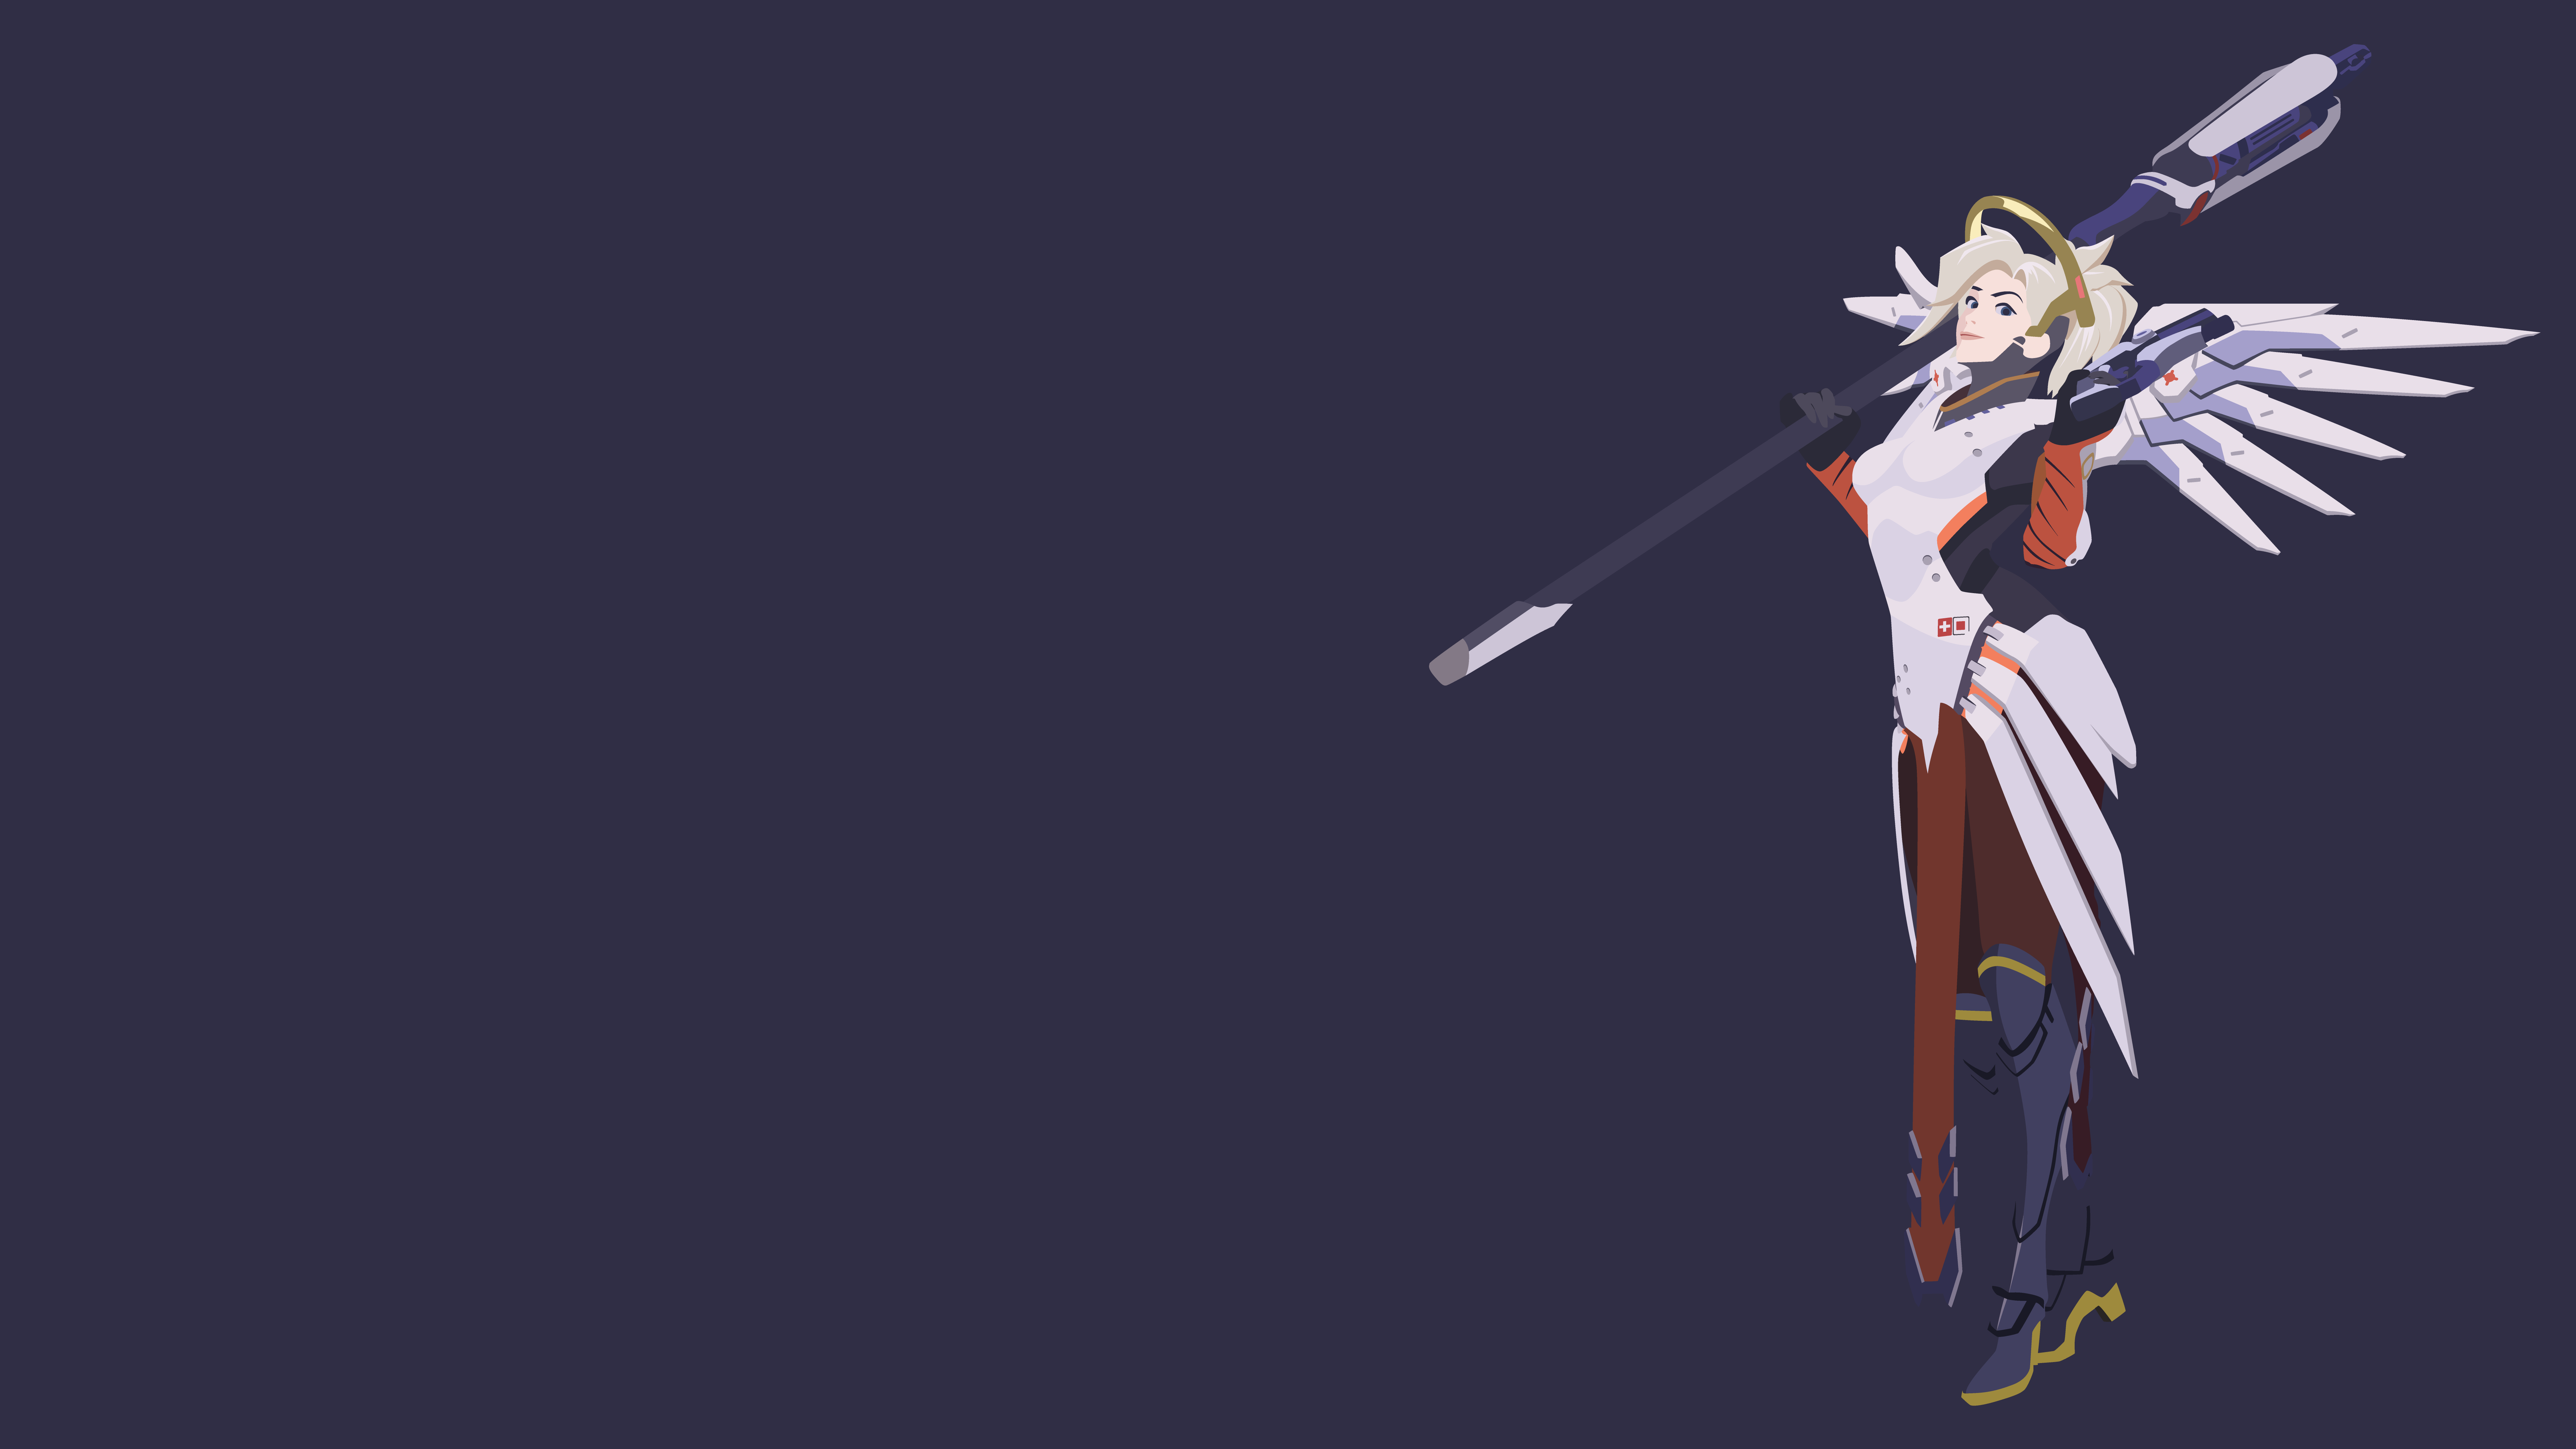 Minimalist Mercy Face Minimalistic Wallpaper 1920x1080 By